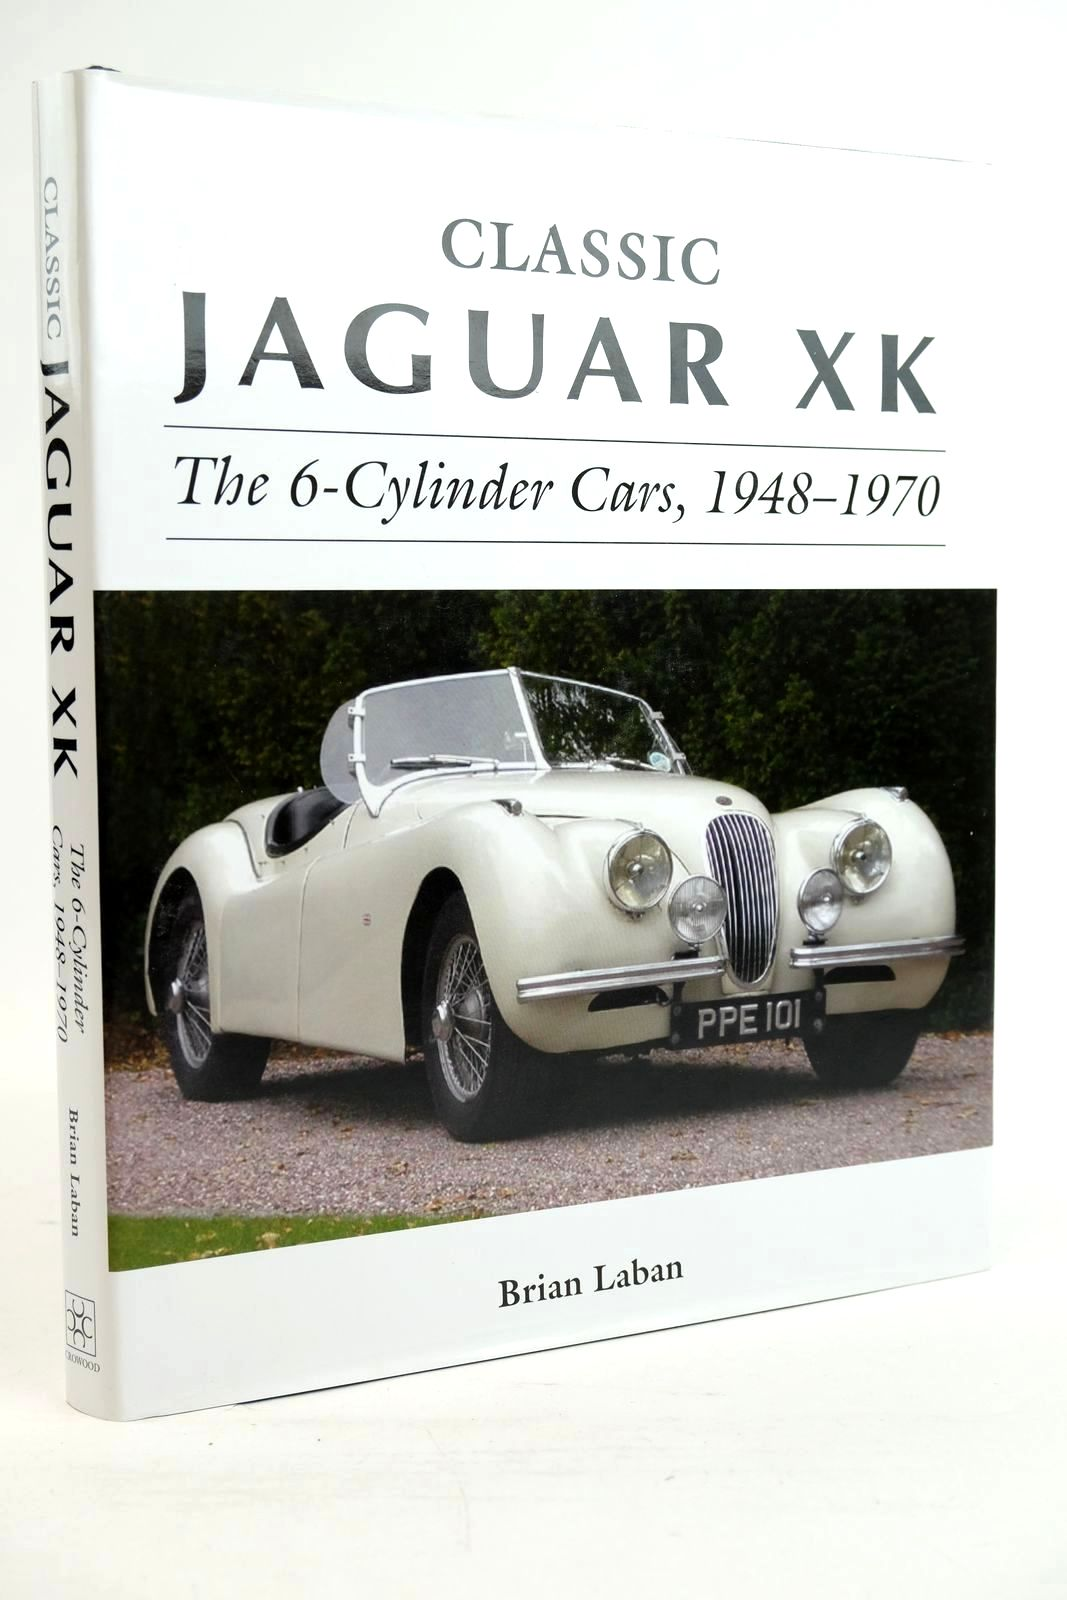 Photo of CLASSIC JAGUAR XK - THE 6-CYLINDER CARS, 1948-1970 written by Laban, Brian published by The Crowood Press (STOCK CODE: 1320157)  for sale by Stella & Rose's Books